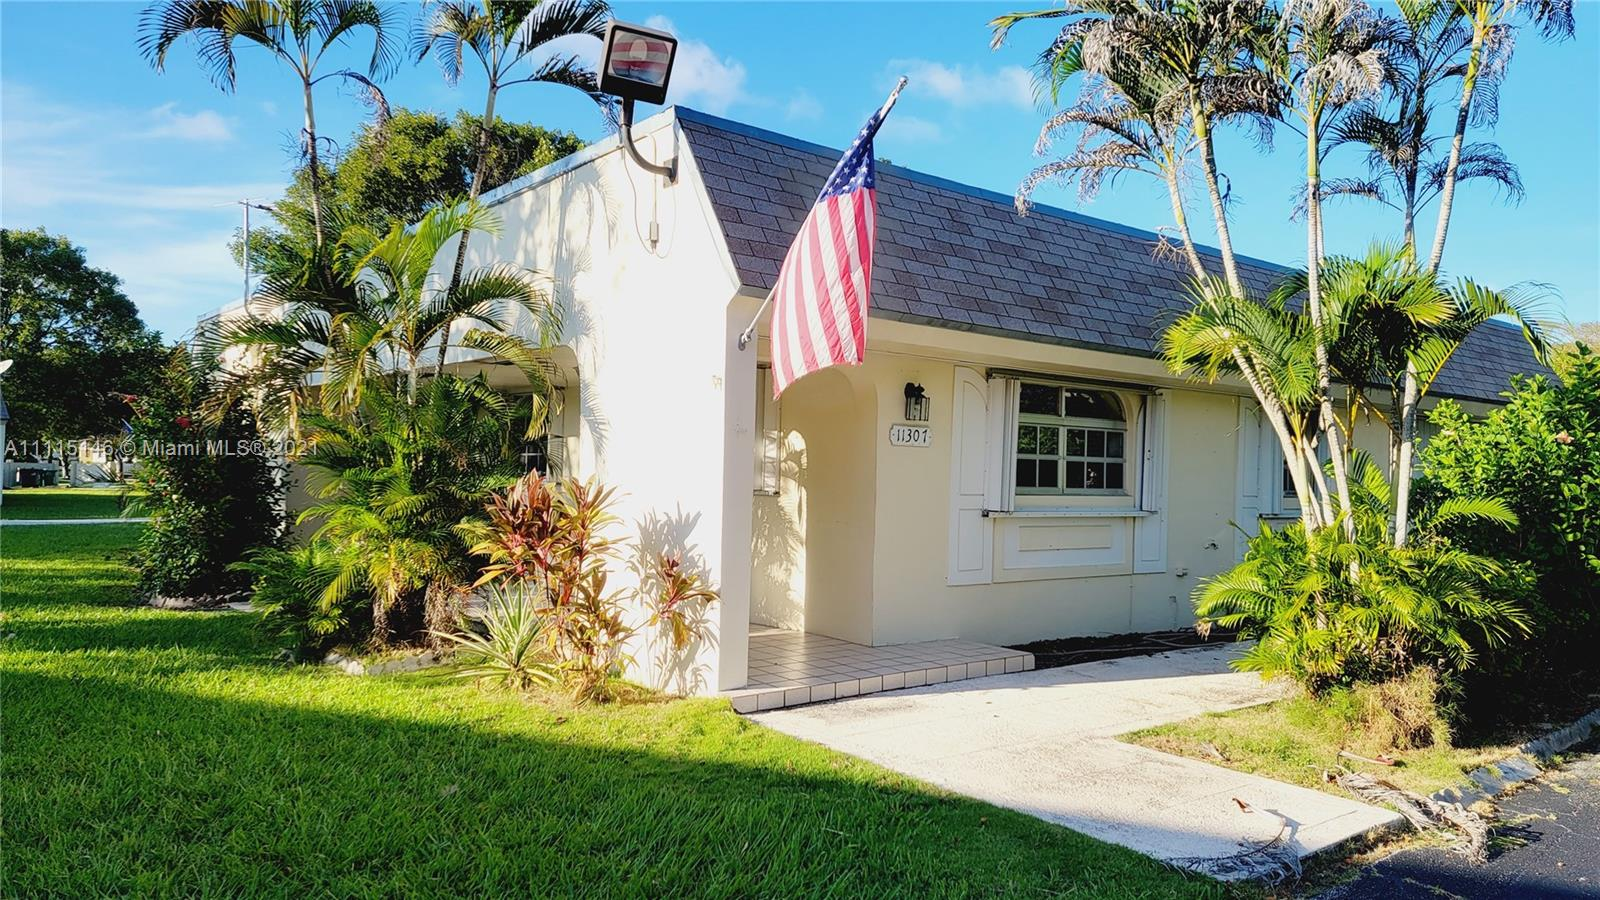 Residential For Sale at 11307 Miami